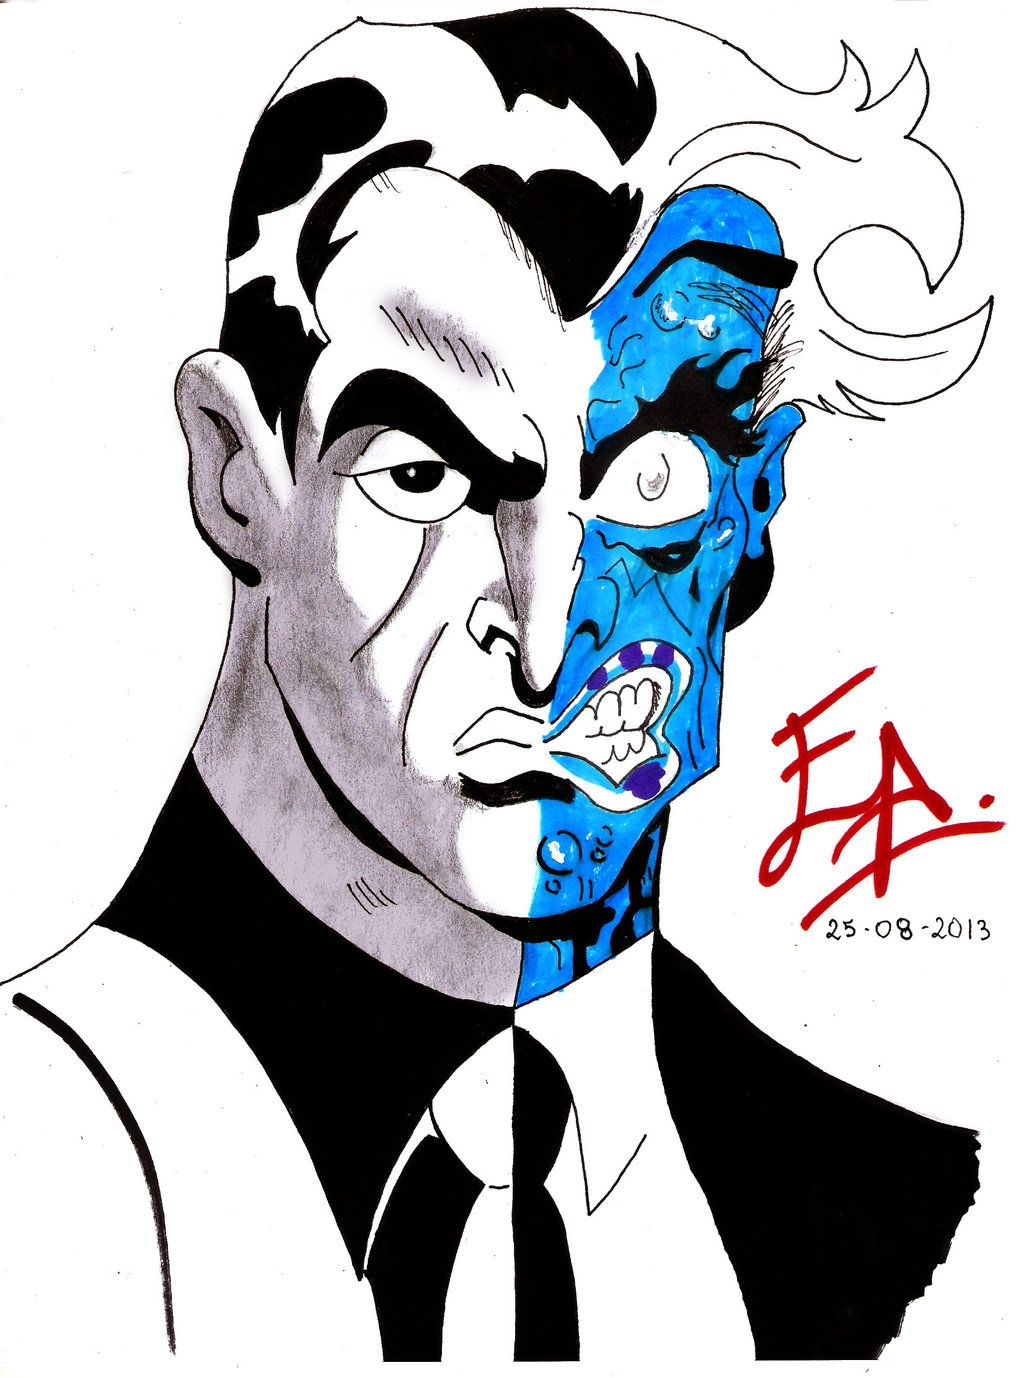 Two Face Feels Lucky In New Batman Arkham City Image: Two- Face By Edwinj22